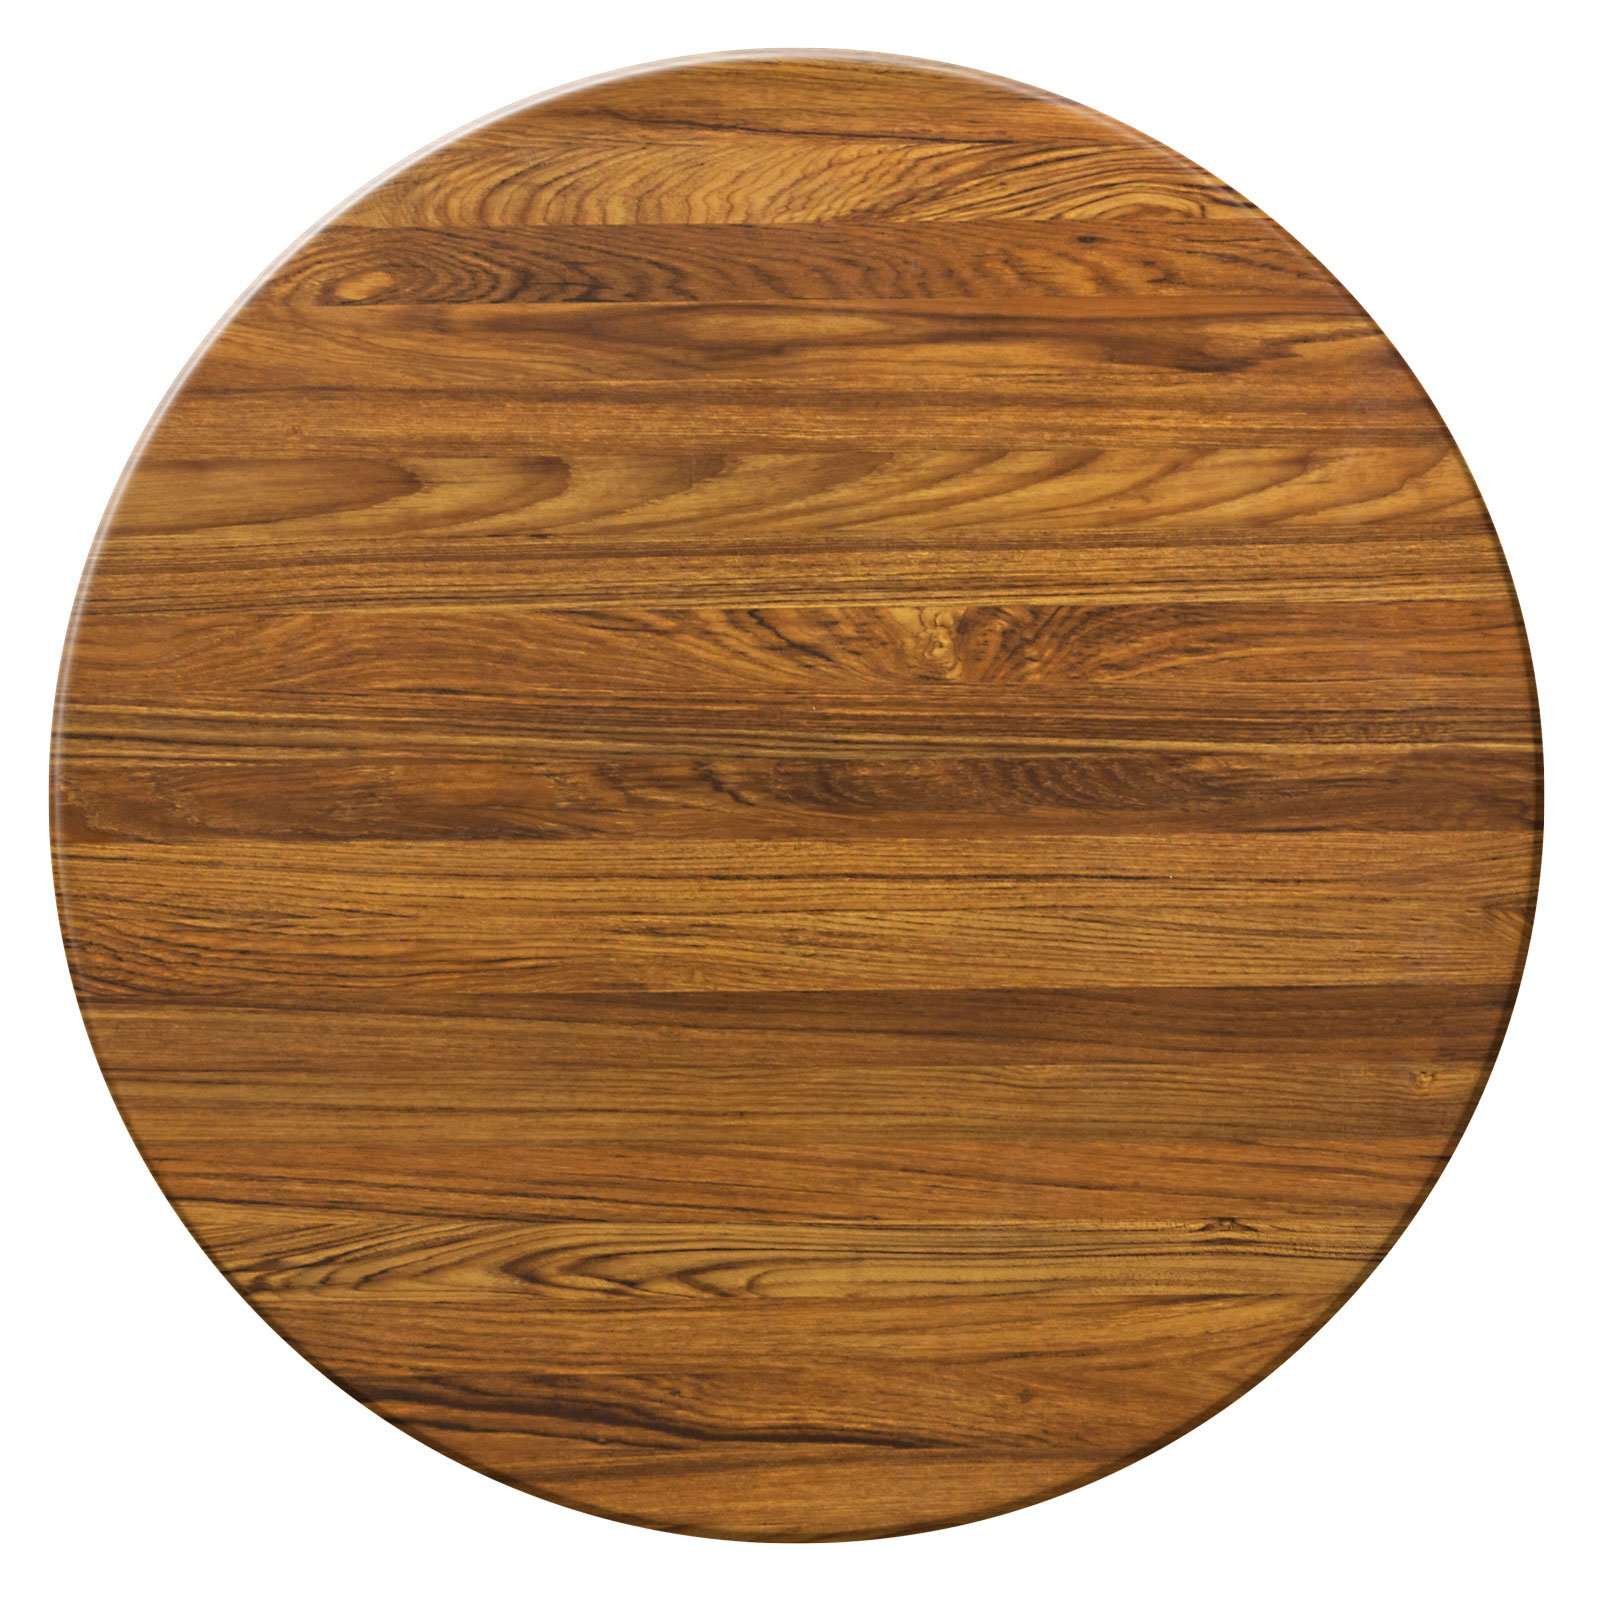 Duratop 42'' Round Table Top in Teak by Contract Style